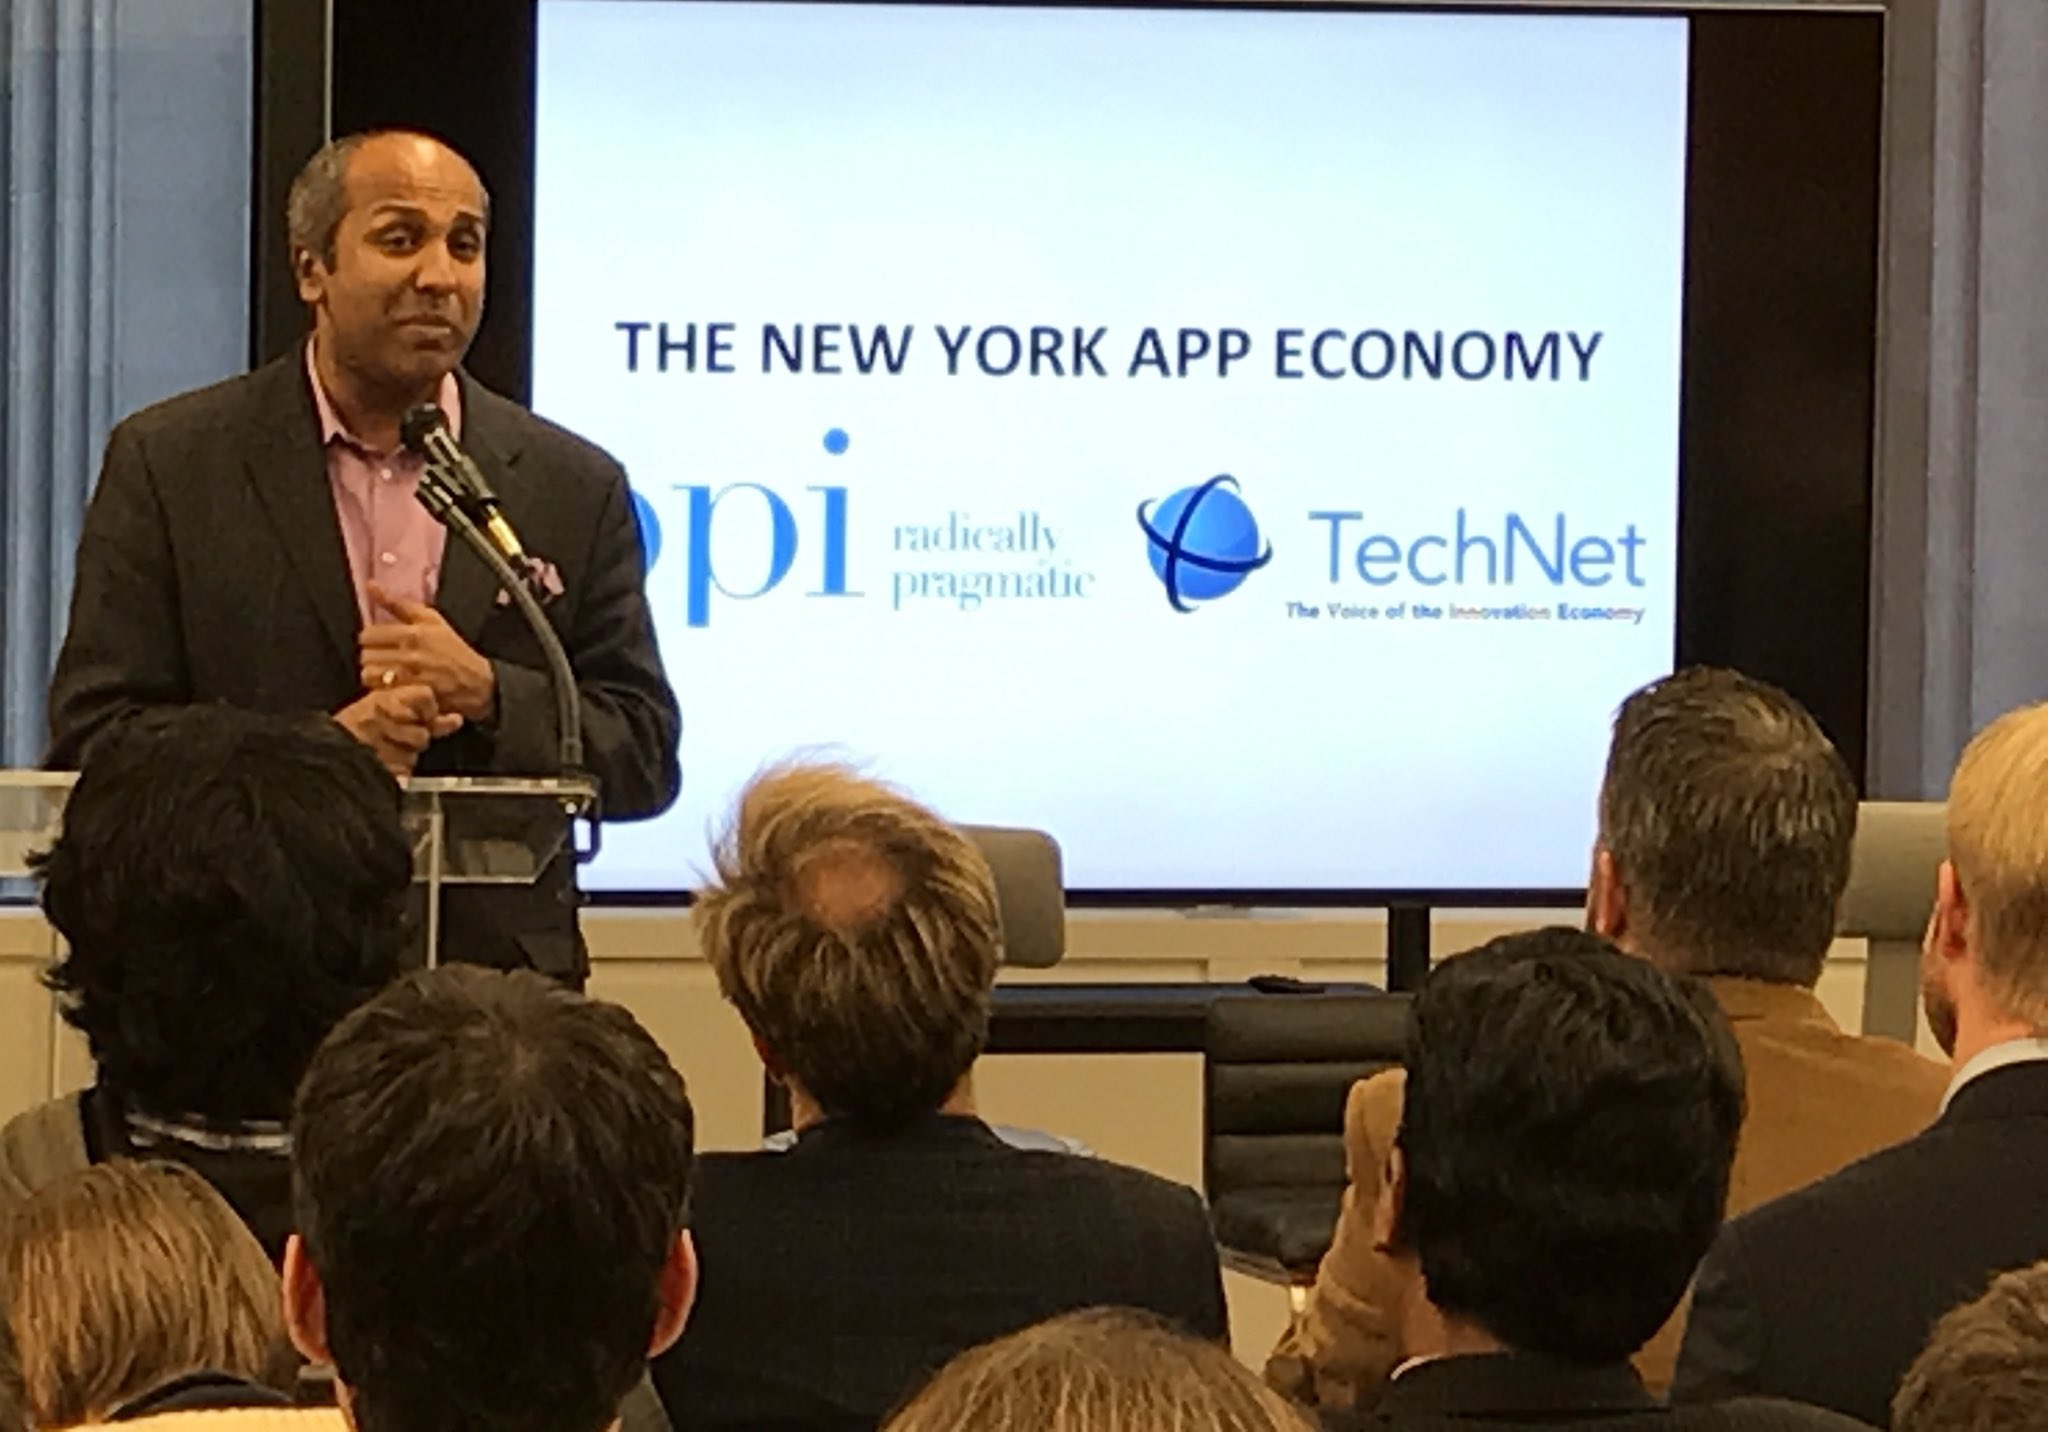 The CDO of @nycgov (formerly @metmuseum @Columbia) @sree pushing empathy as part of tech disruption. @cs4nyc @NYCTechTalent prime examples. https://t.co/hHNpBE58U3